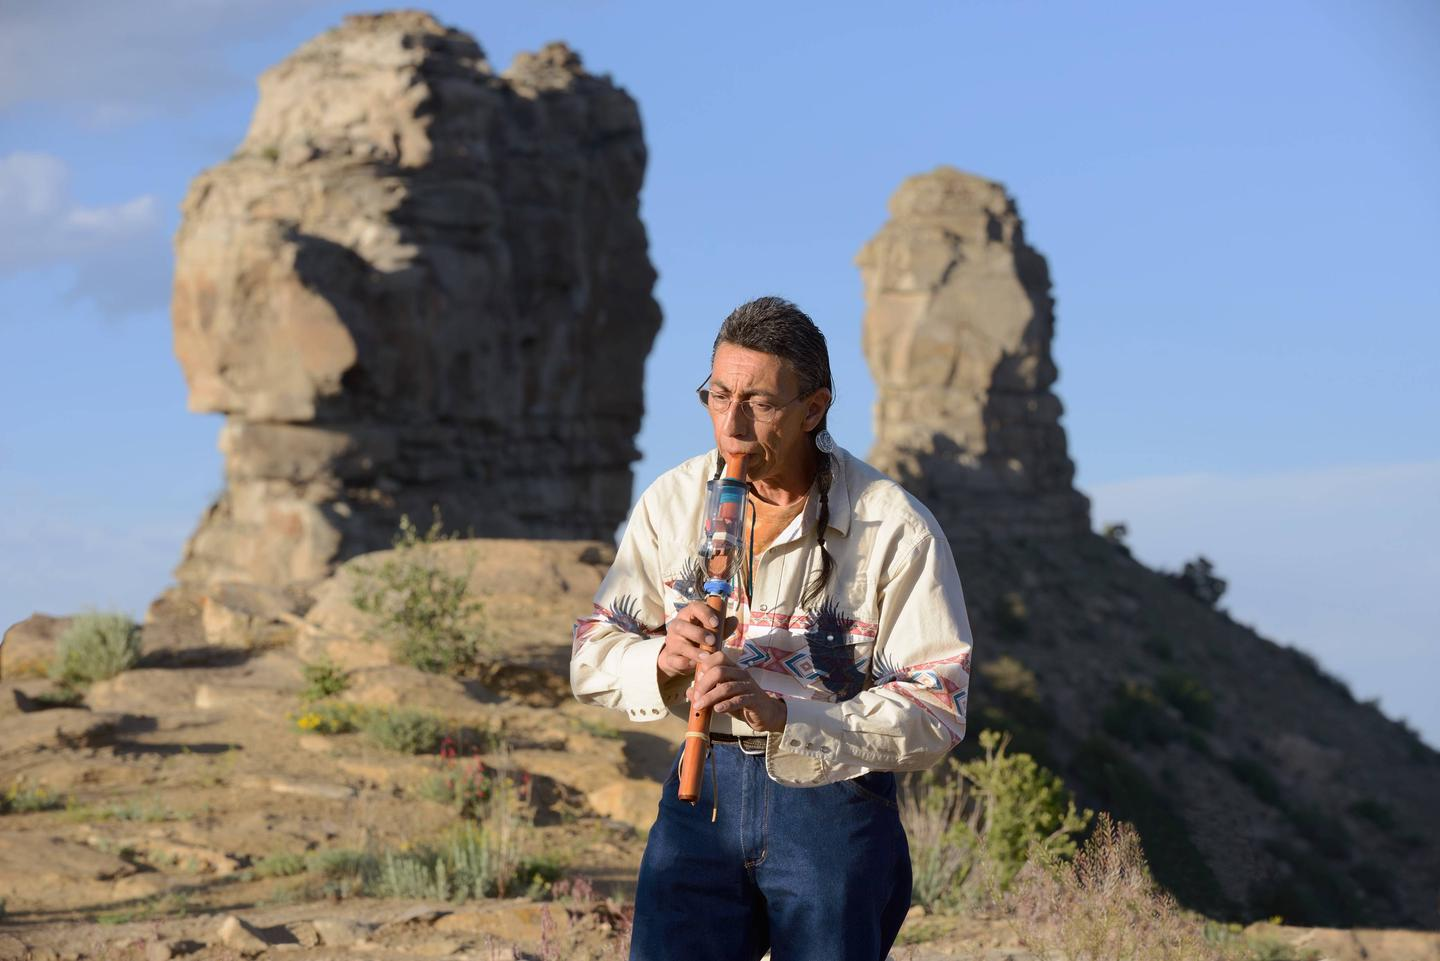 Listen to live Native American flute music while atttending the Full Moon Program at Chimney Rock National Monument!You'll be torn between looking west to see the spectacular sunset and focusing on the eastern mountain range to see the first sliver of moon at Chimney Rock's Full Moon Program.